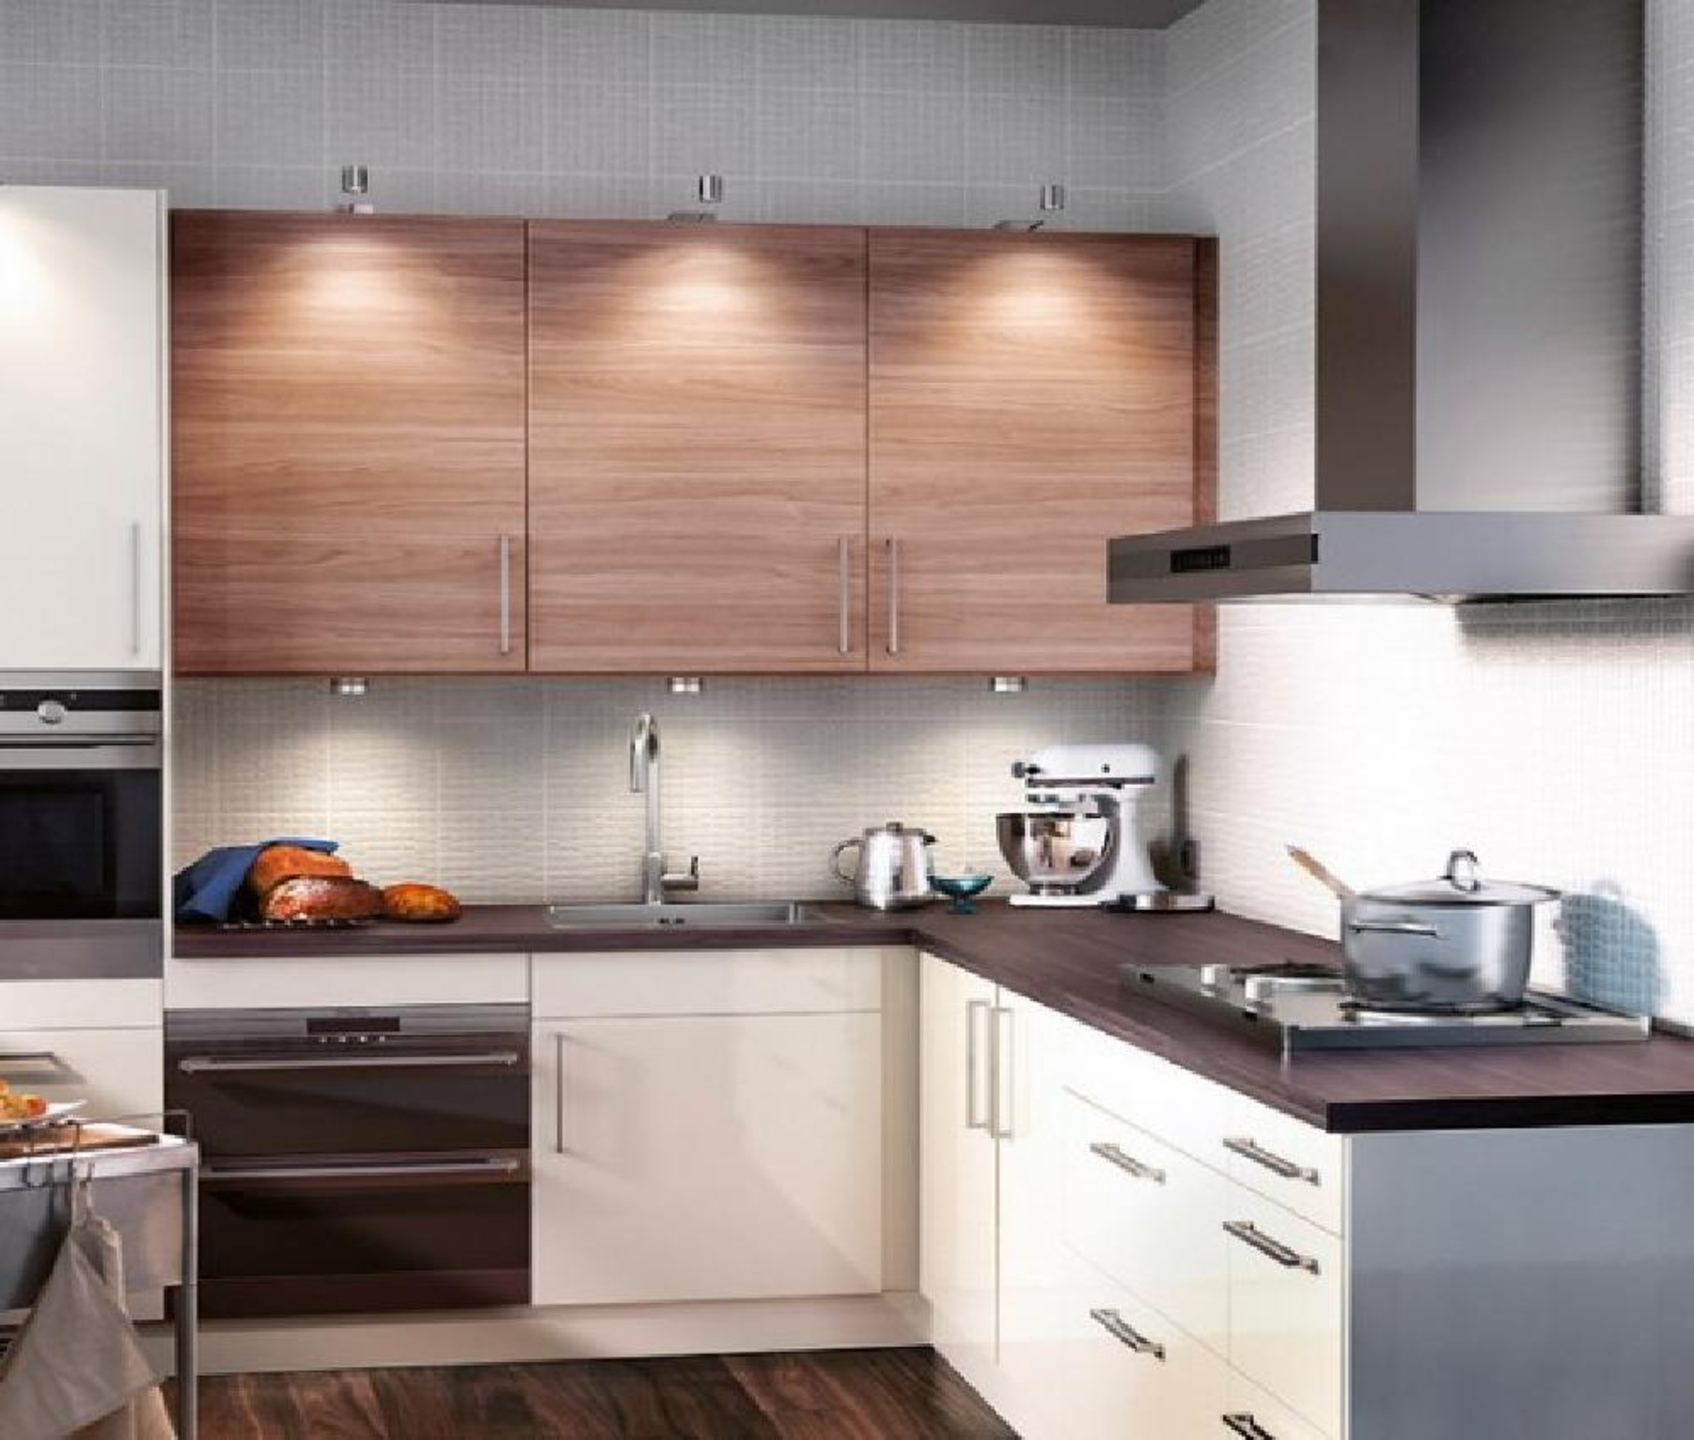 Mounting Kitchen Cabinets To Plywood